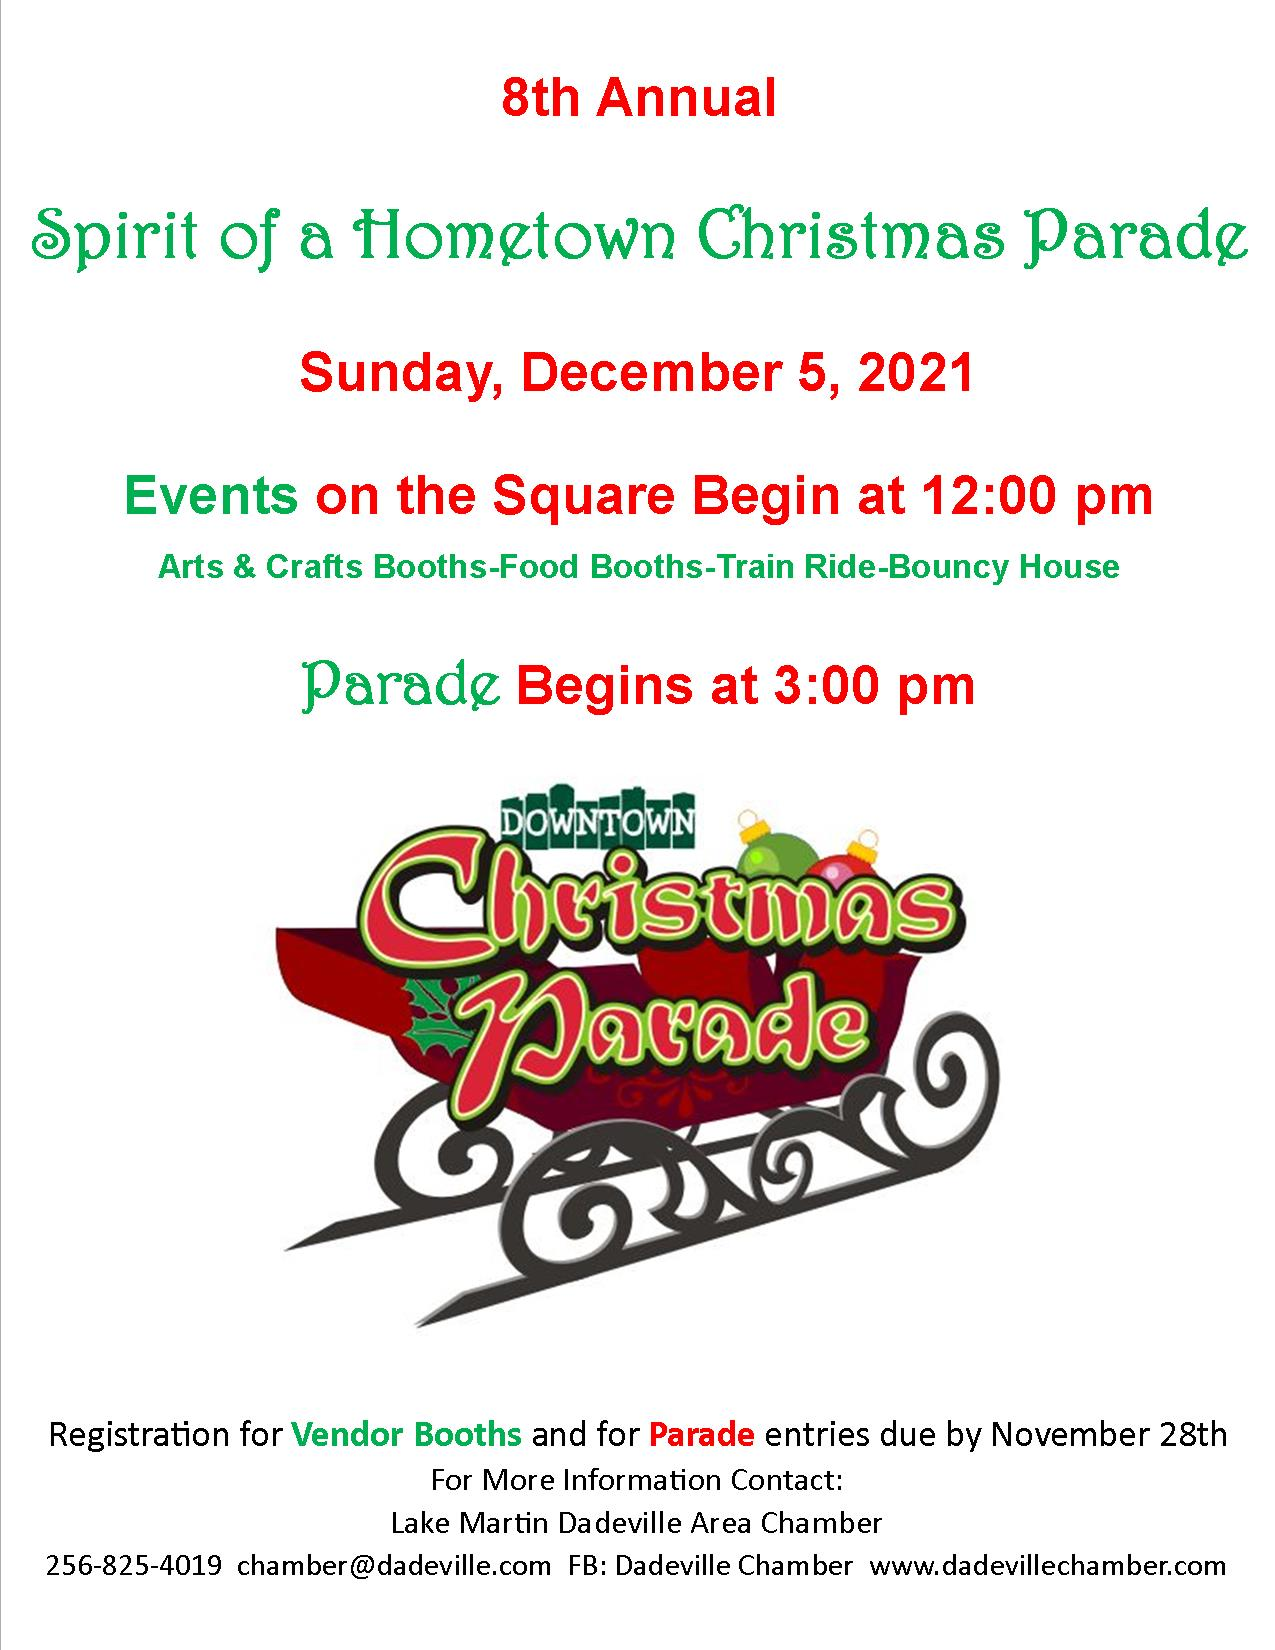 8th Annual Dadeville's Spirit of a Hometown Christmas Parade